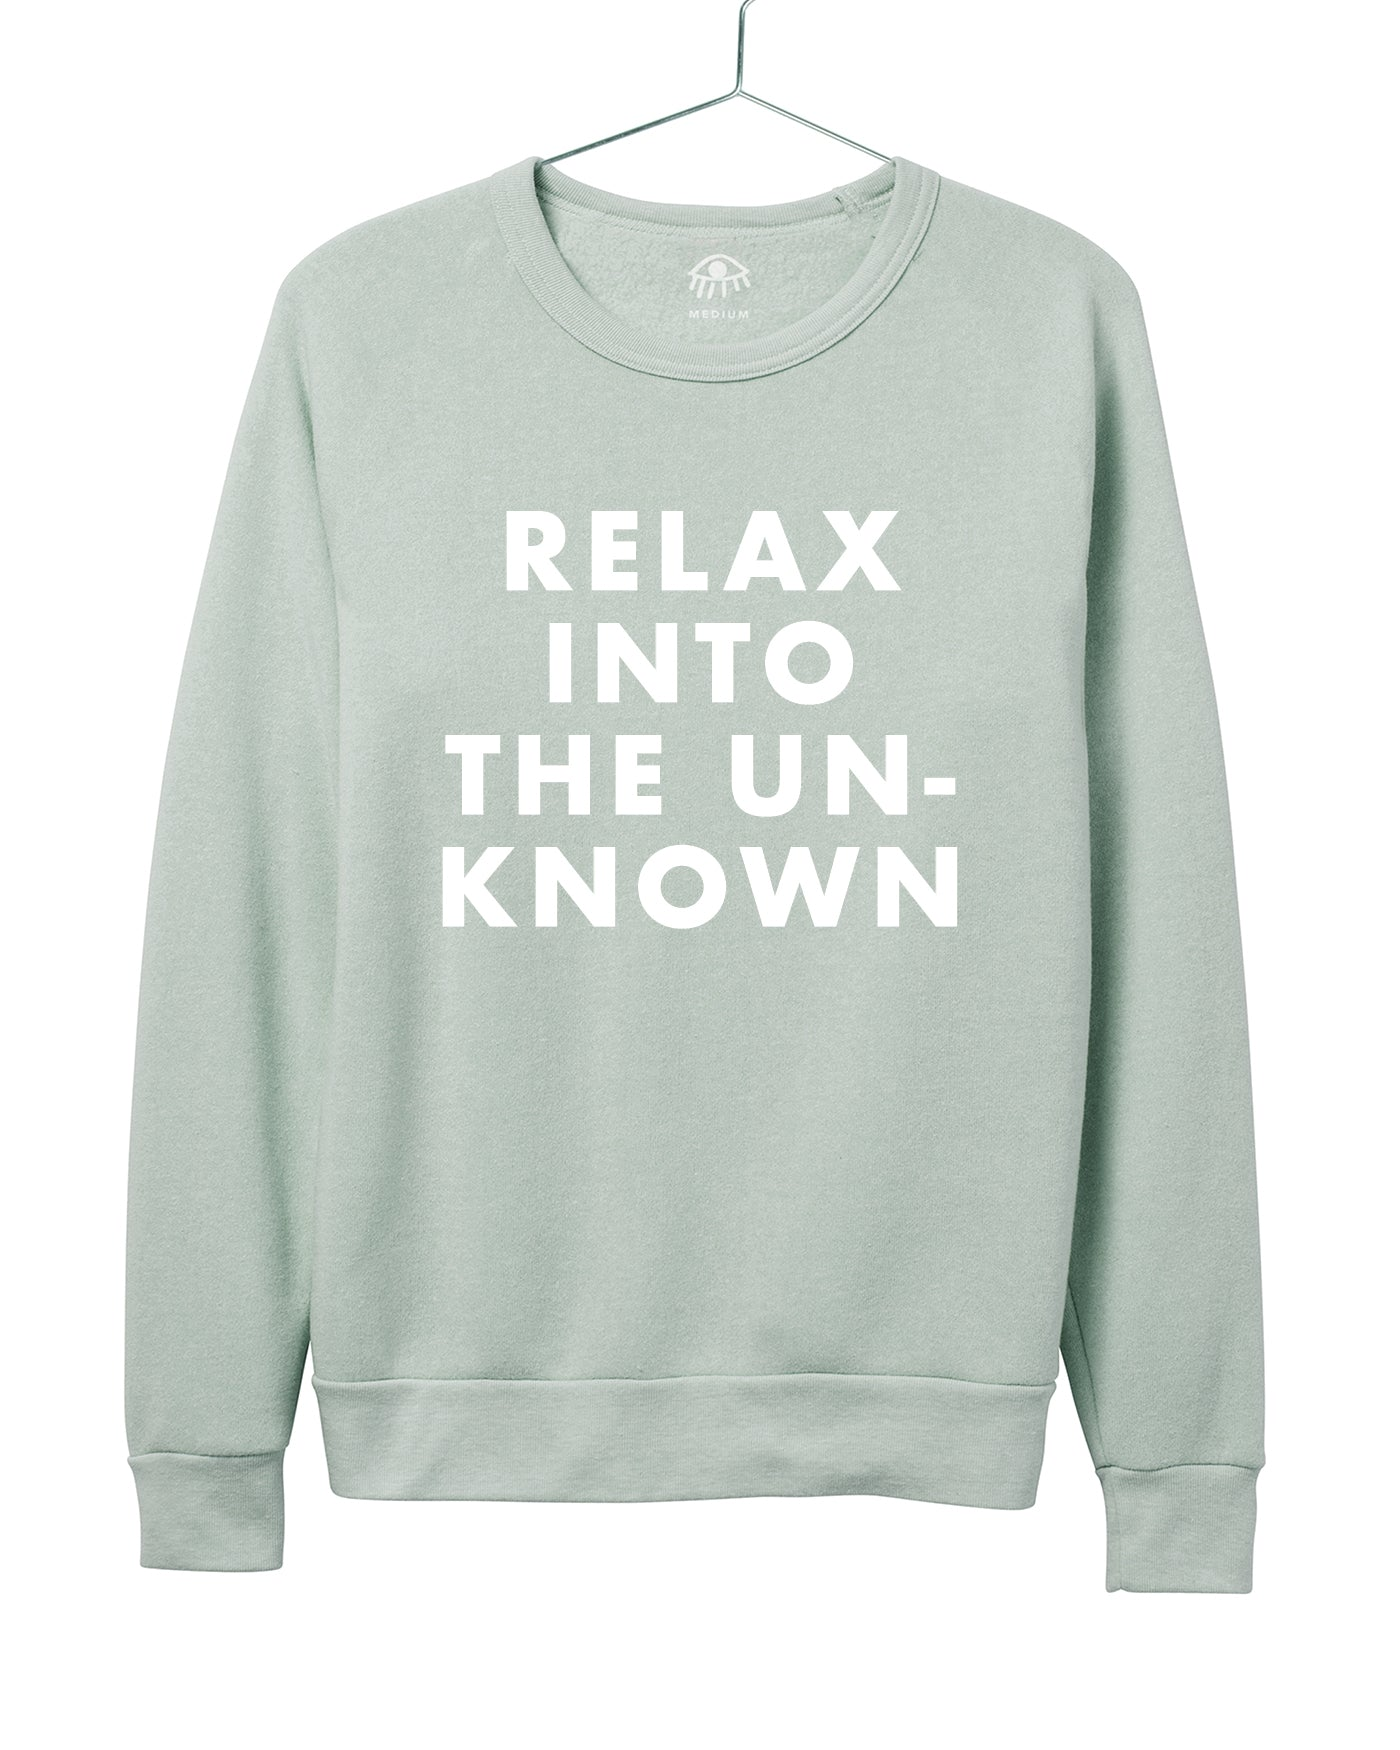 Relax into the unknown Women's Crewneck